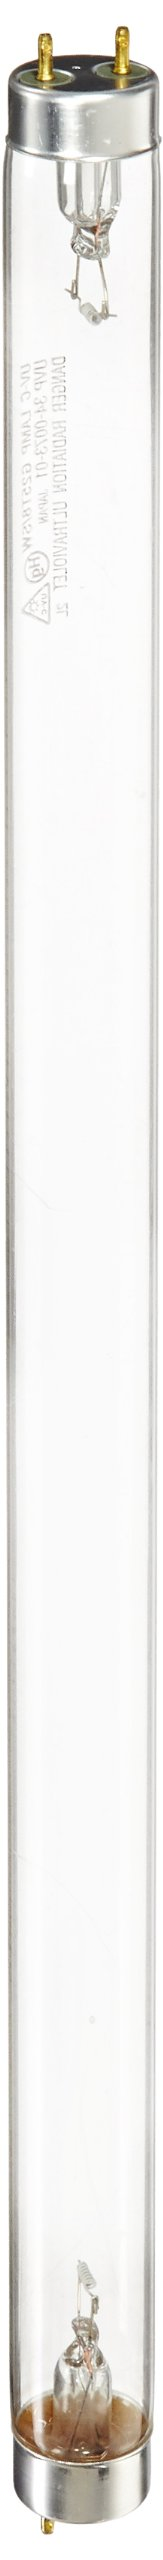 UVP 34-0073-01 Replacement UV Tube, 17.12'' Length, 254nm Shortwave, 25W